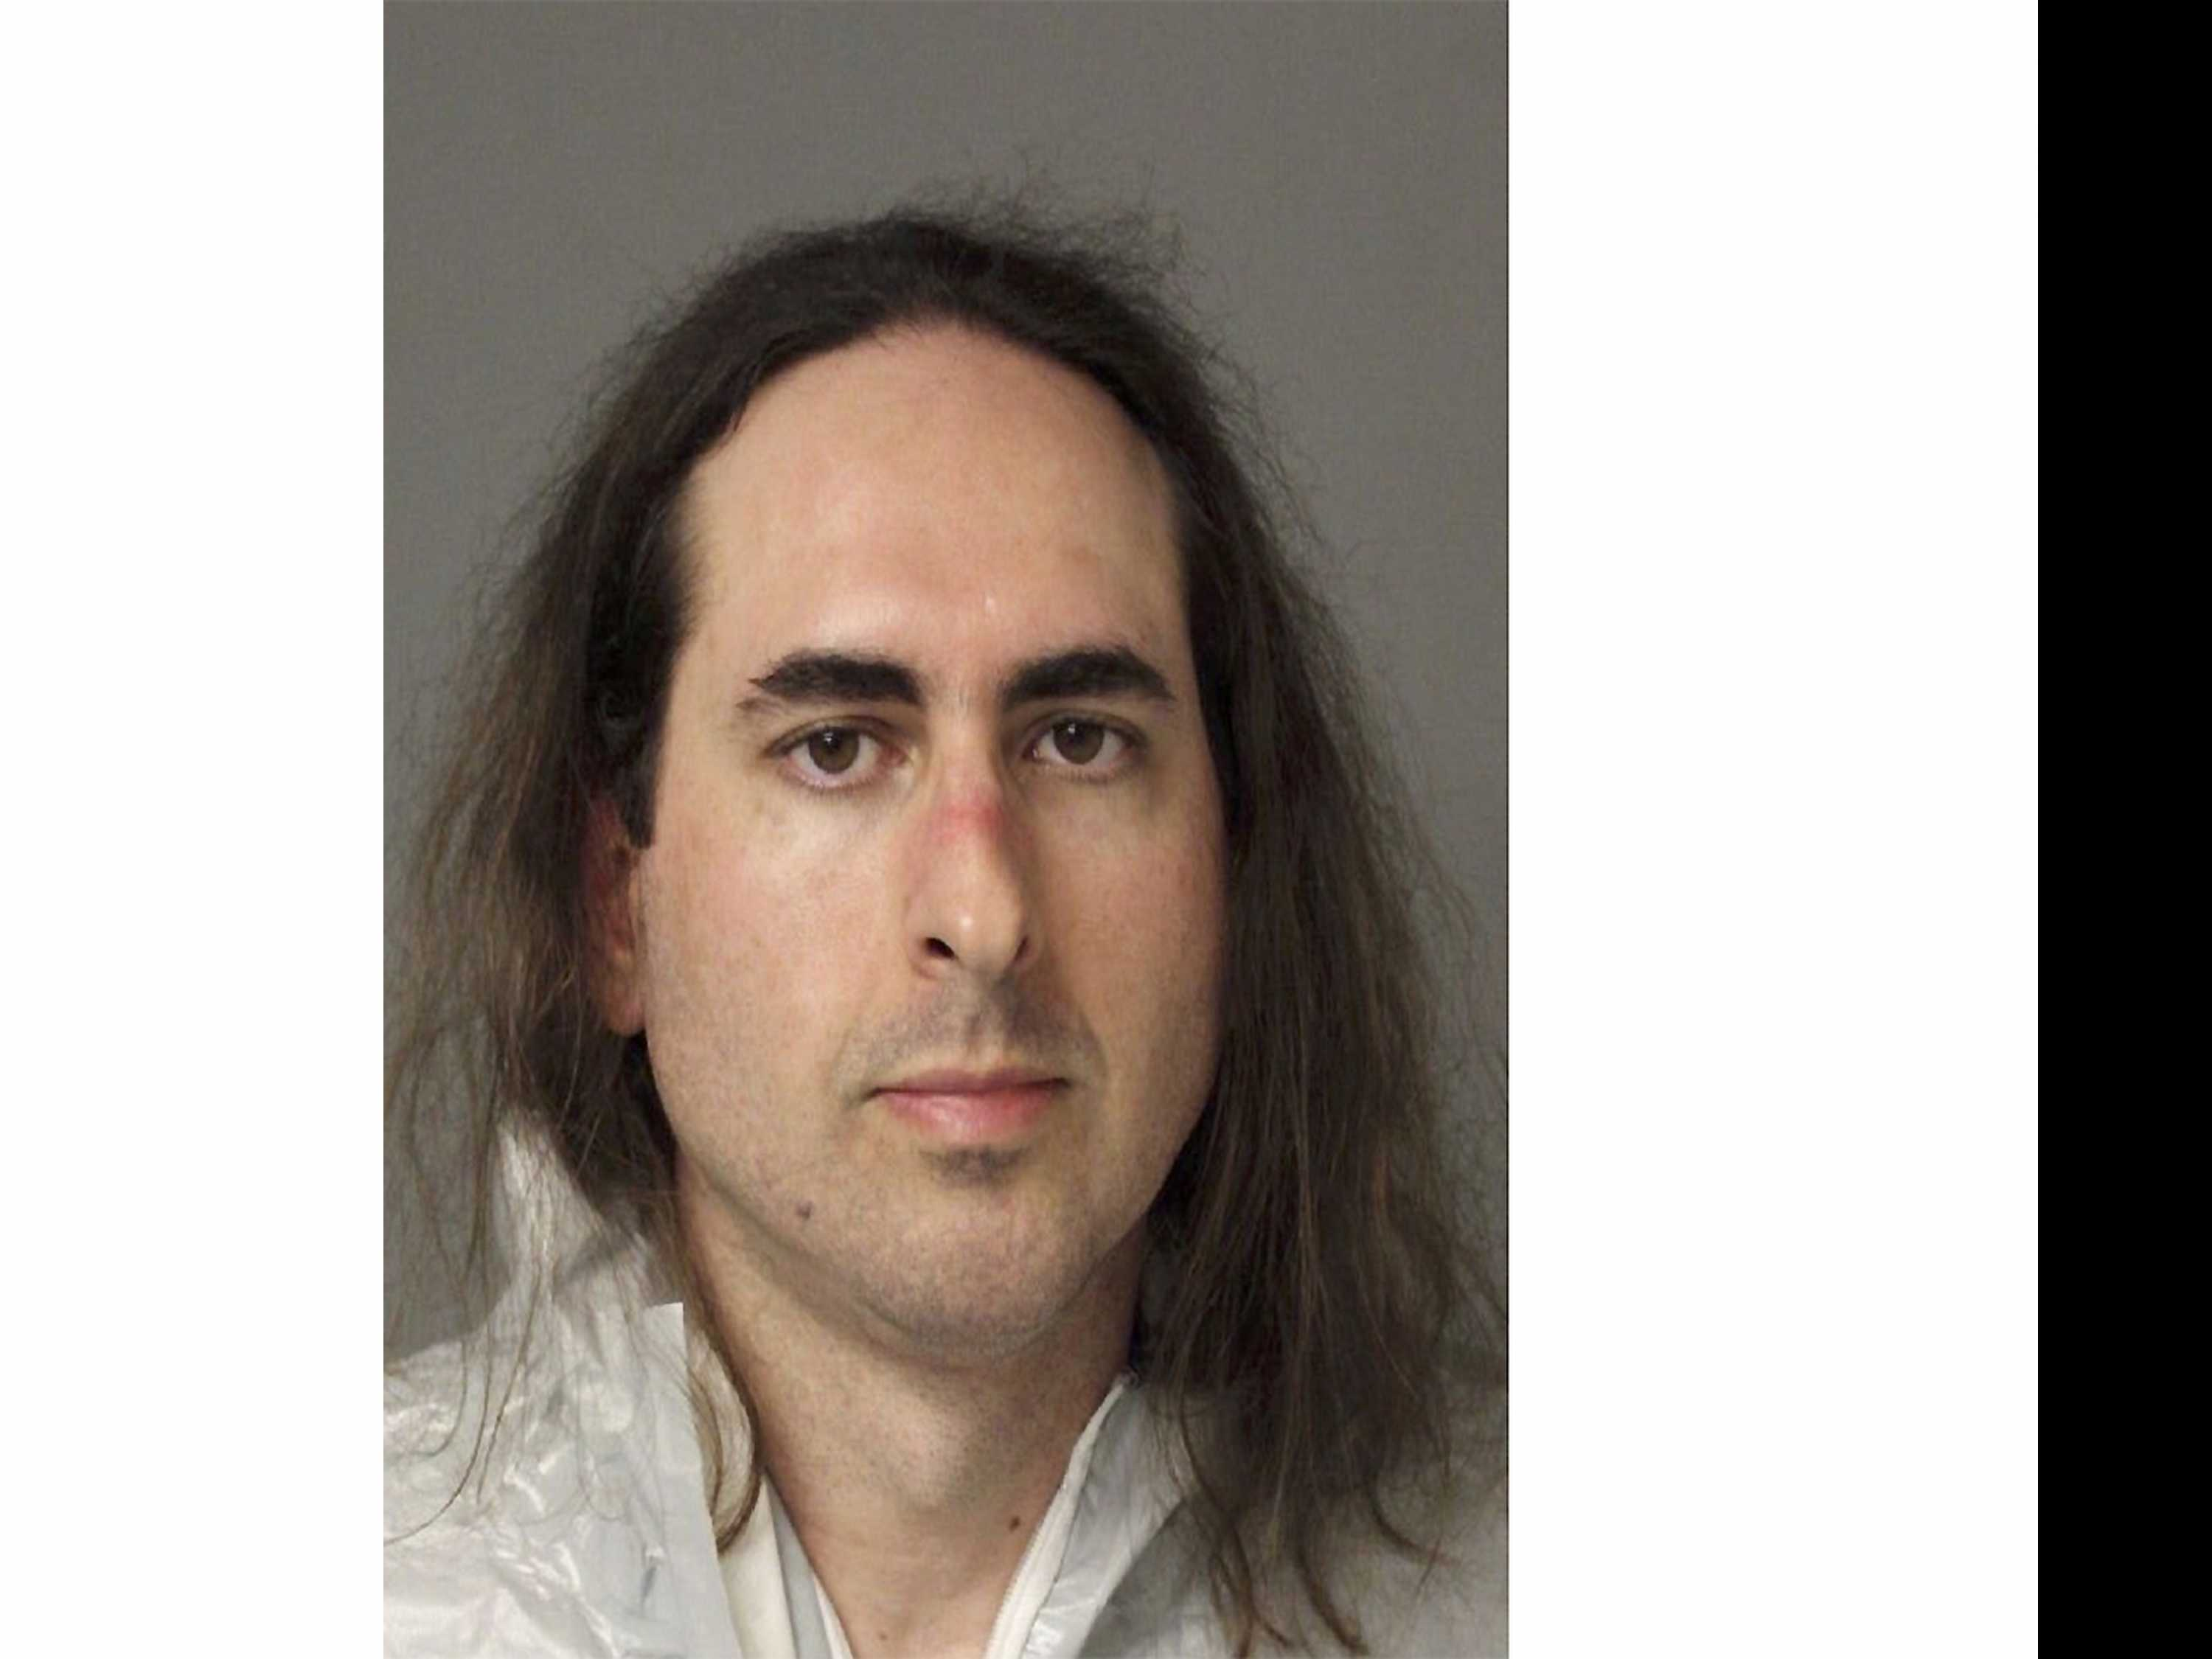 Police Called Suspect in Newsroom Rampage No Threat In 2013